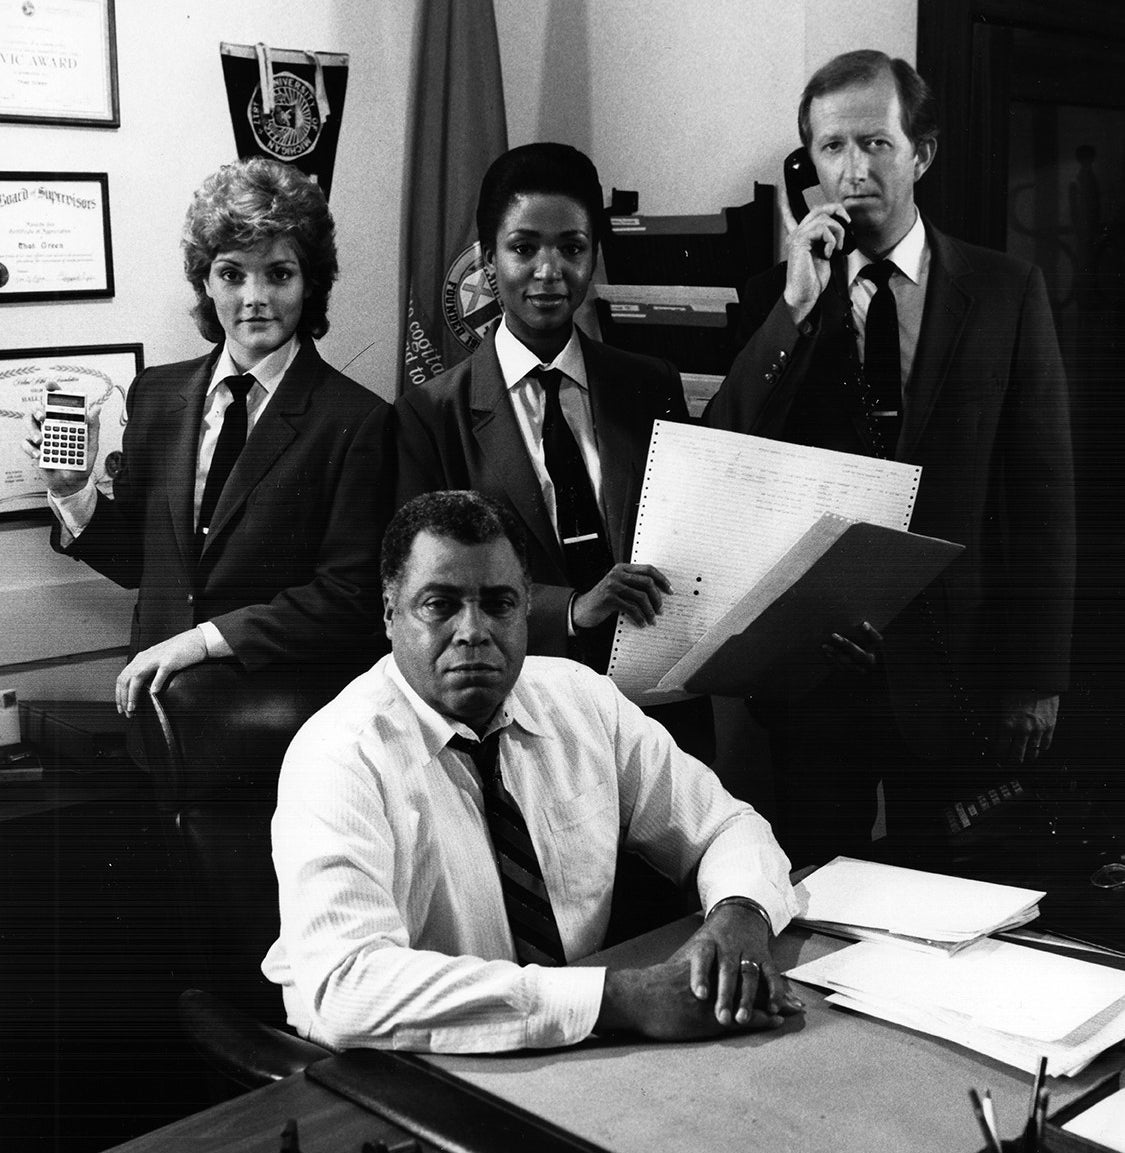 The Mathnet team (clockwise from top left): Detective Kate Monday (Beverly Leech), Technical Analyst Debbie Williams (Mary Watson), Detective George Frankly (Joe Howard) and Chief Thad Green (James Earl Jones).